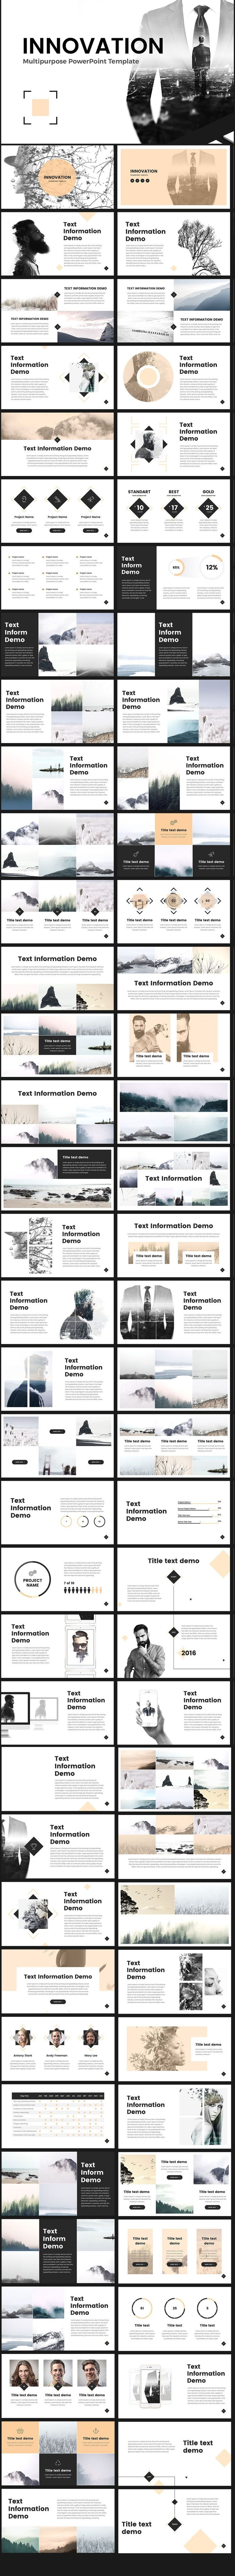 26 best ppt images on Pinterest | Free stencils, Templates free and ...